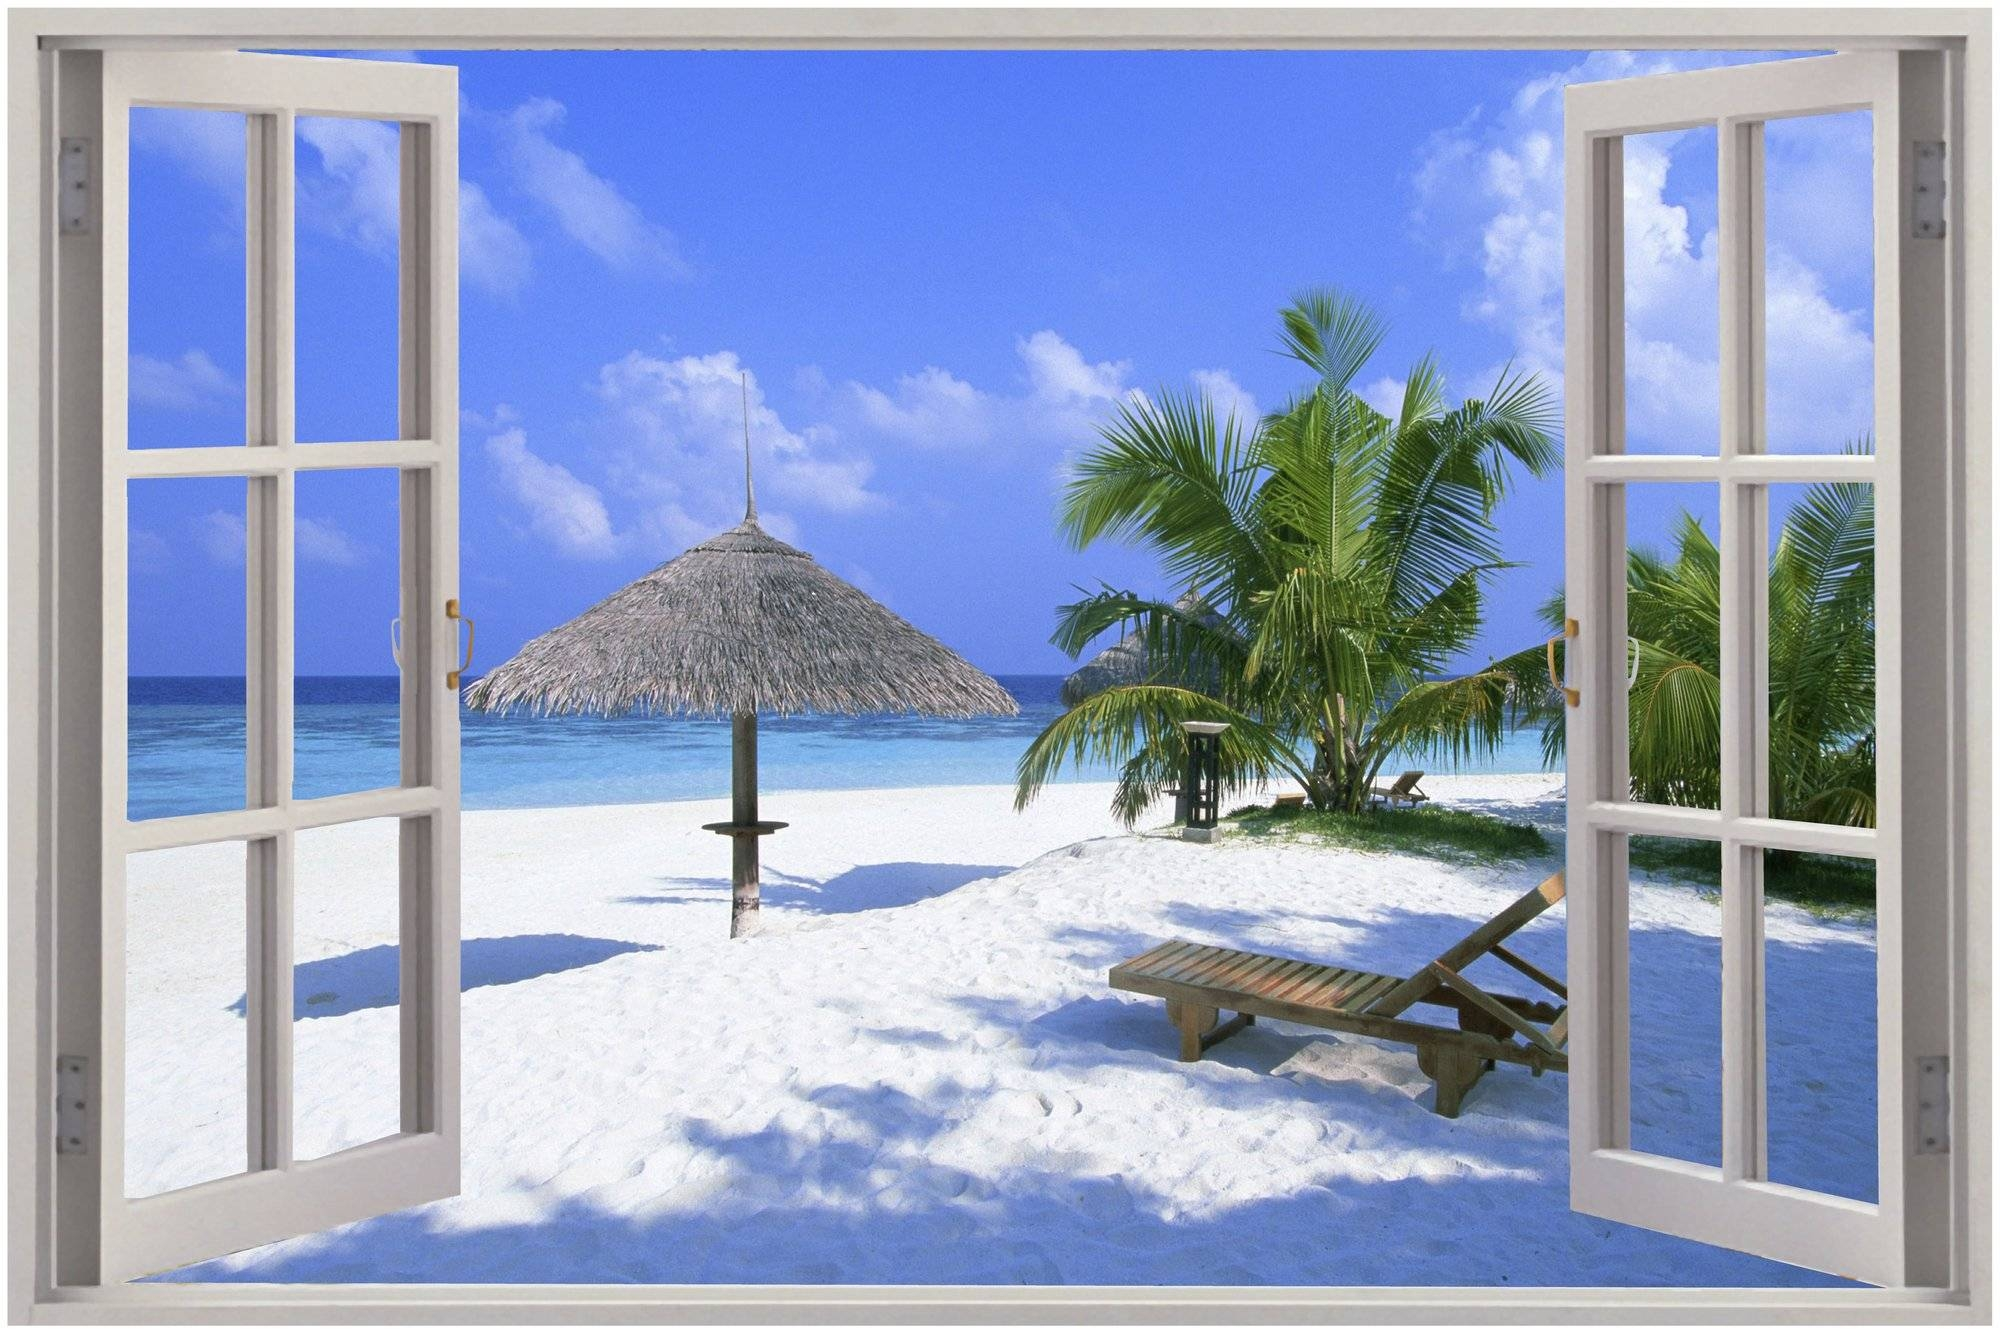 Gorgeous Old Window Frame Wall Art Home Decor D Landscape Window Within Most Up To Date Beach 3d Wall Art (View 17 of 20)